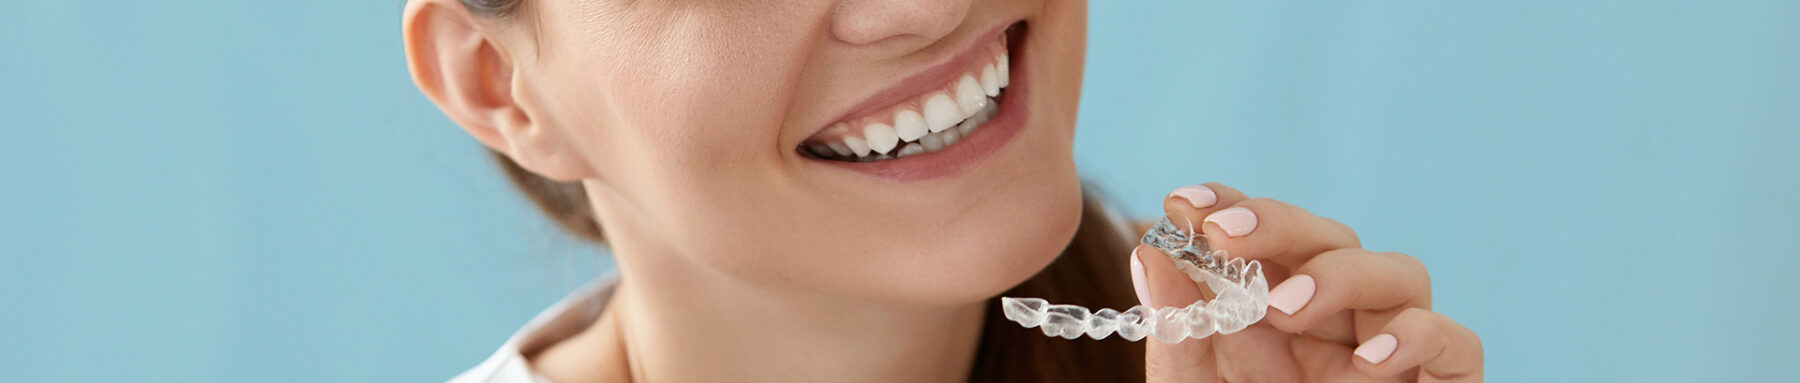 Invisalign Lite cost in London and UK - NW1 Dental Care